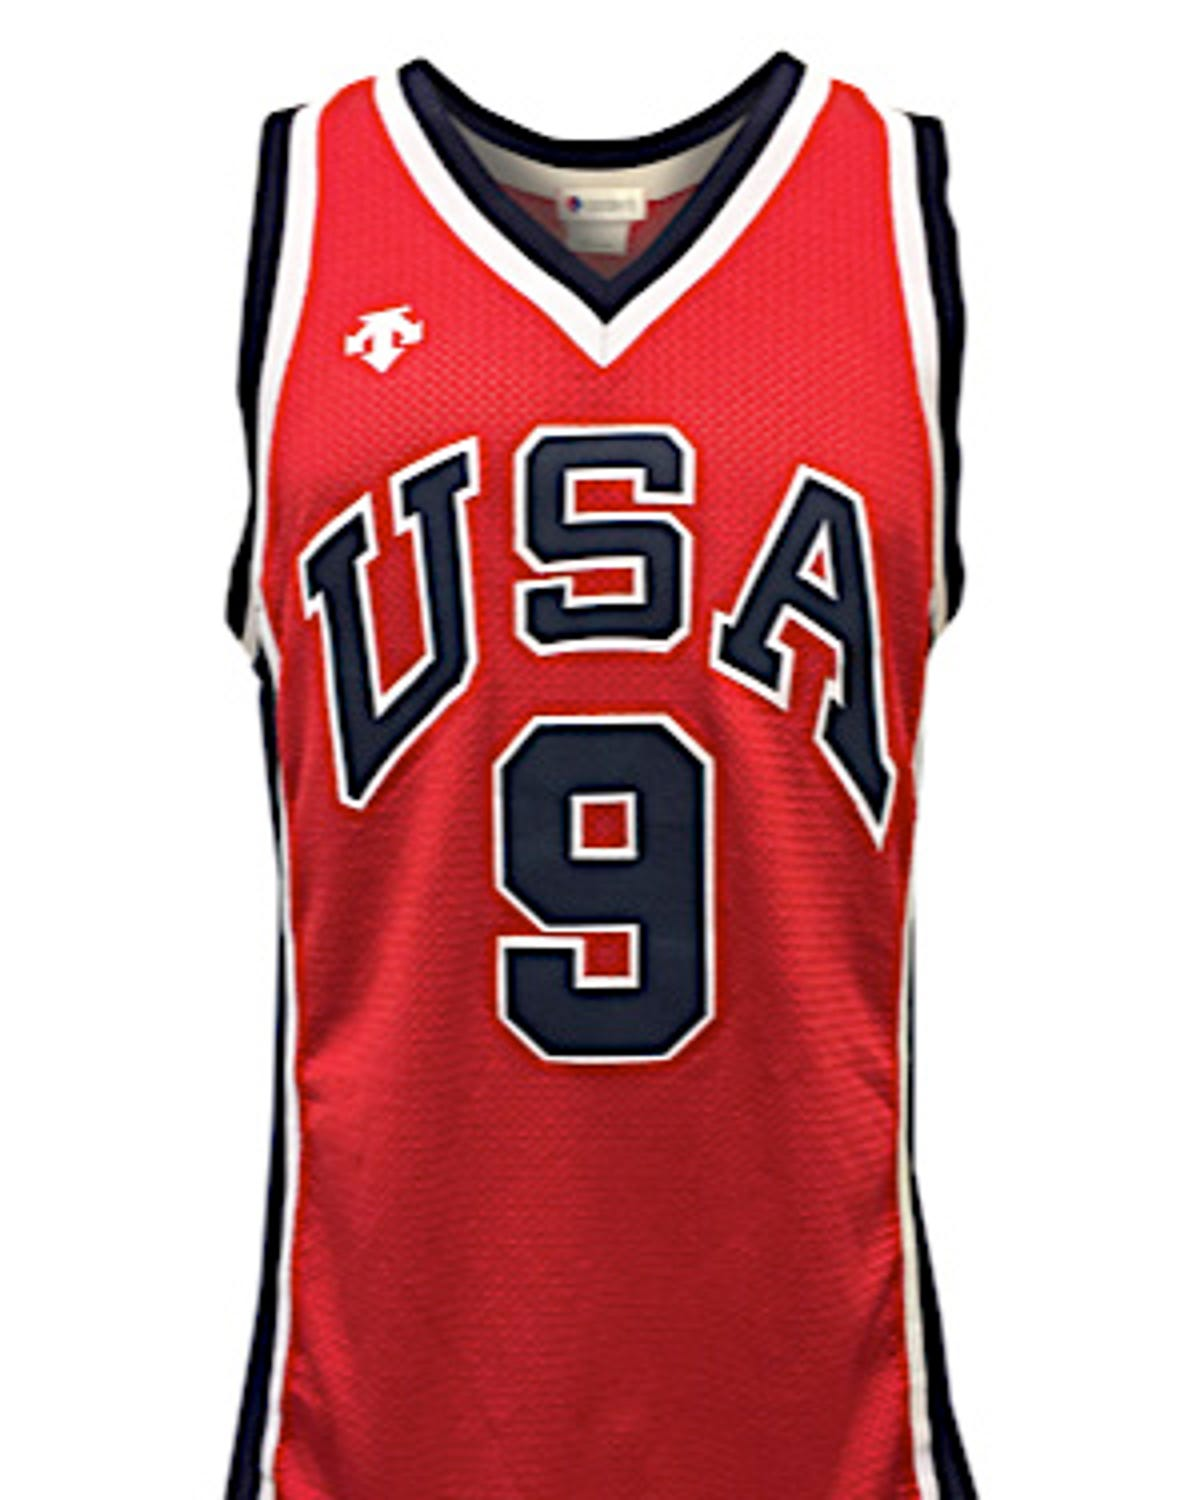 watch 7ad42 2d8bc Jersey possibly worn by Michael Jordan sells for $273,904